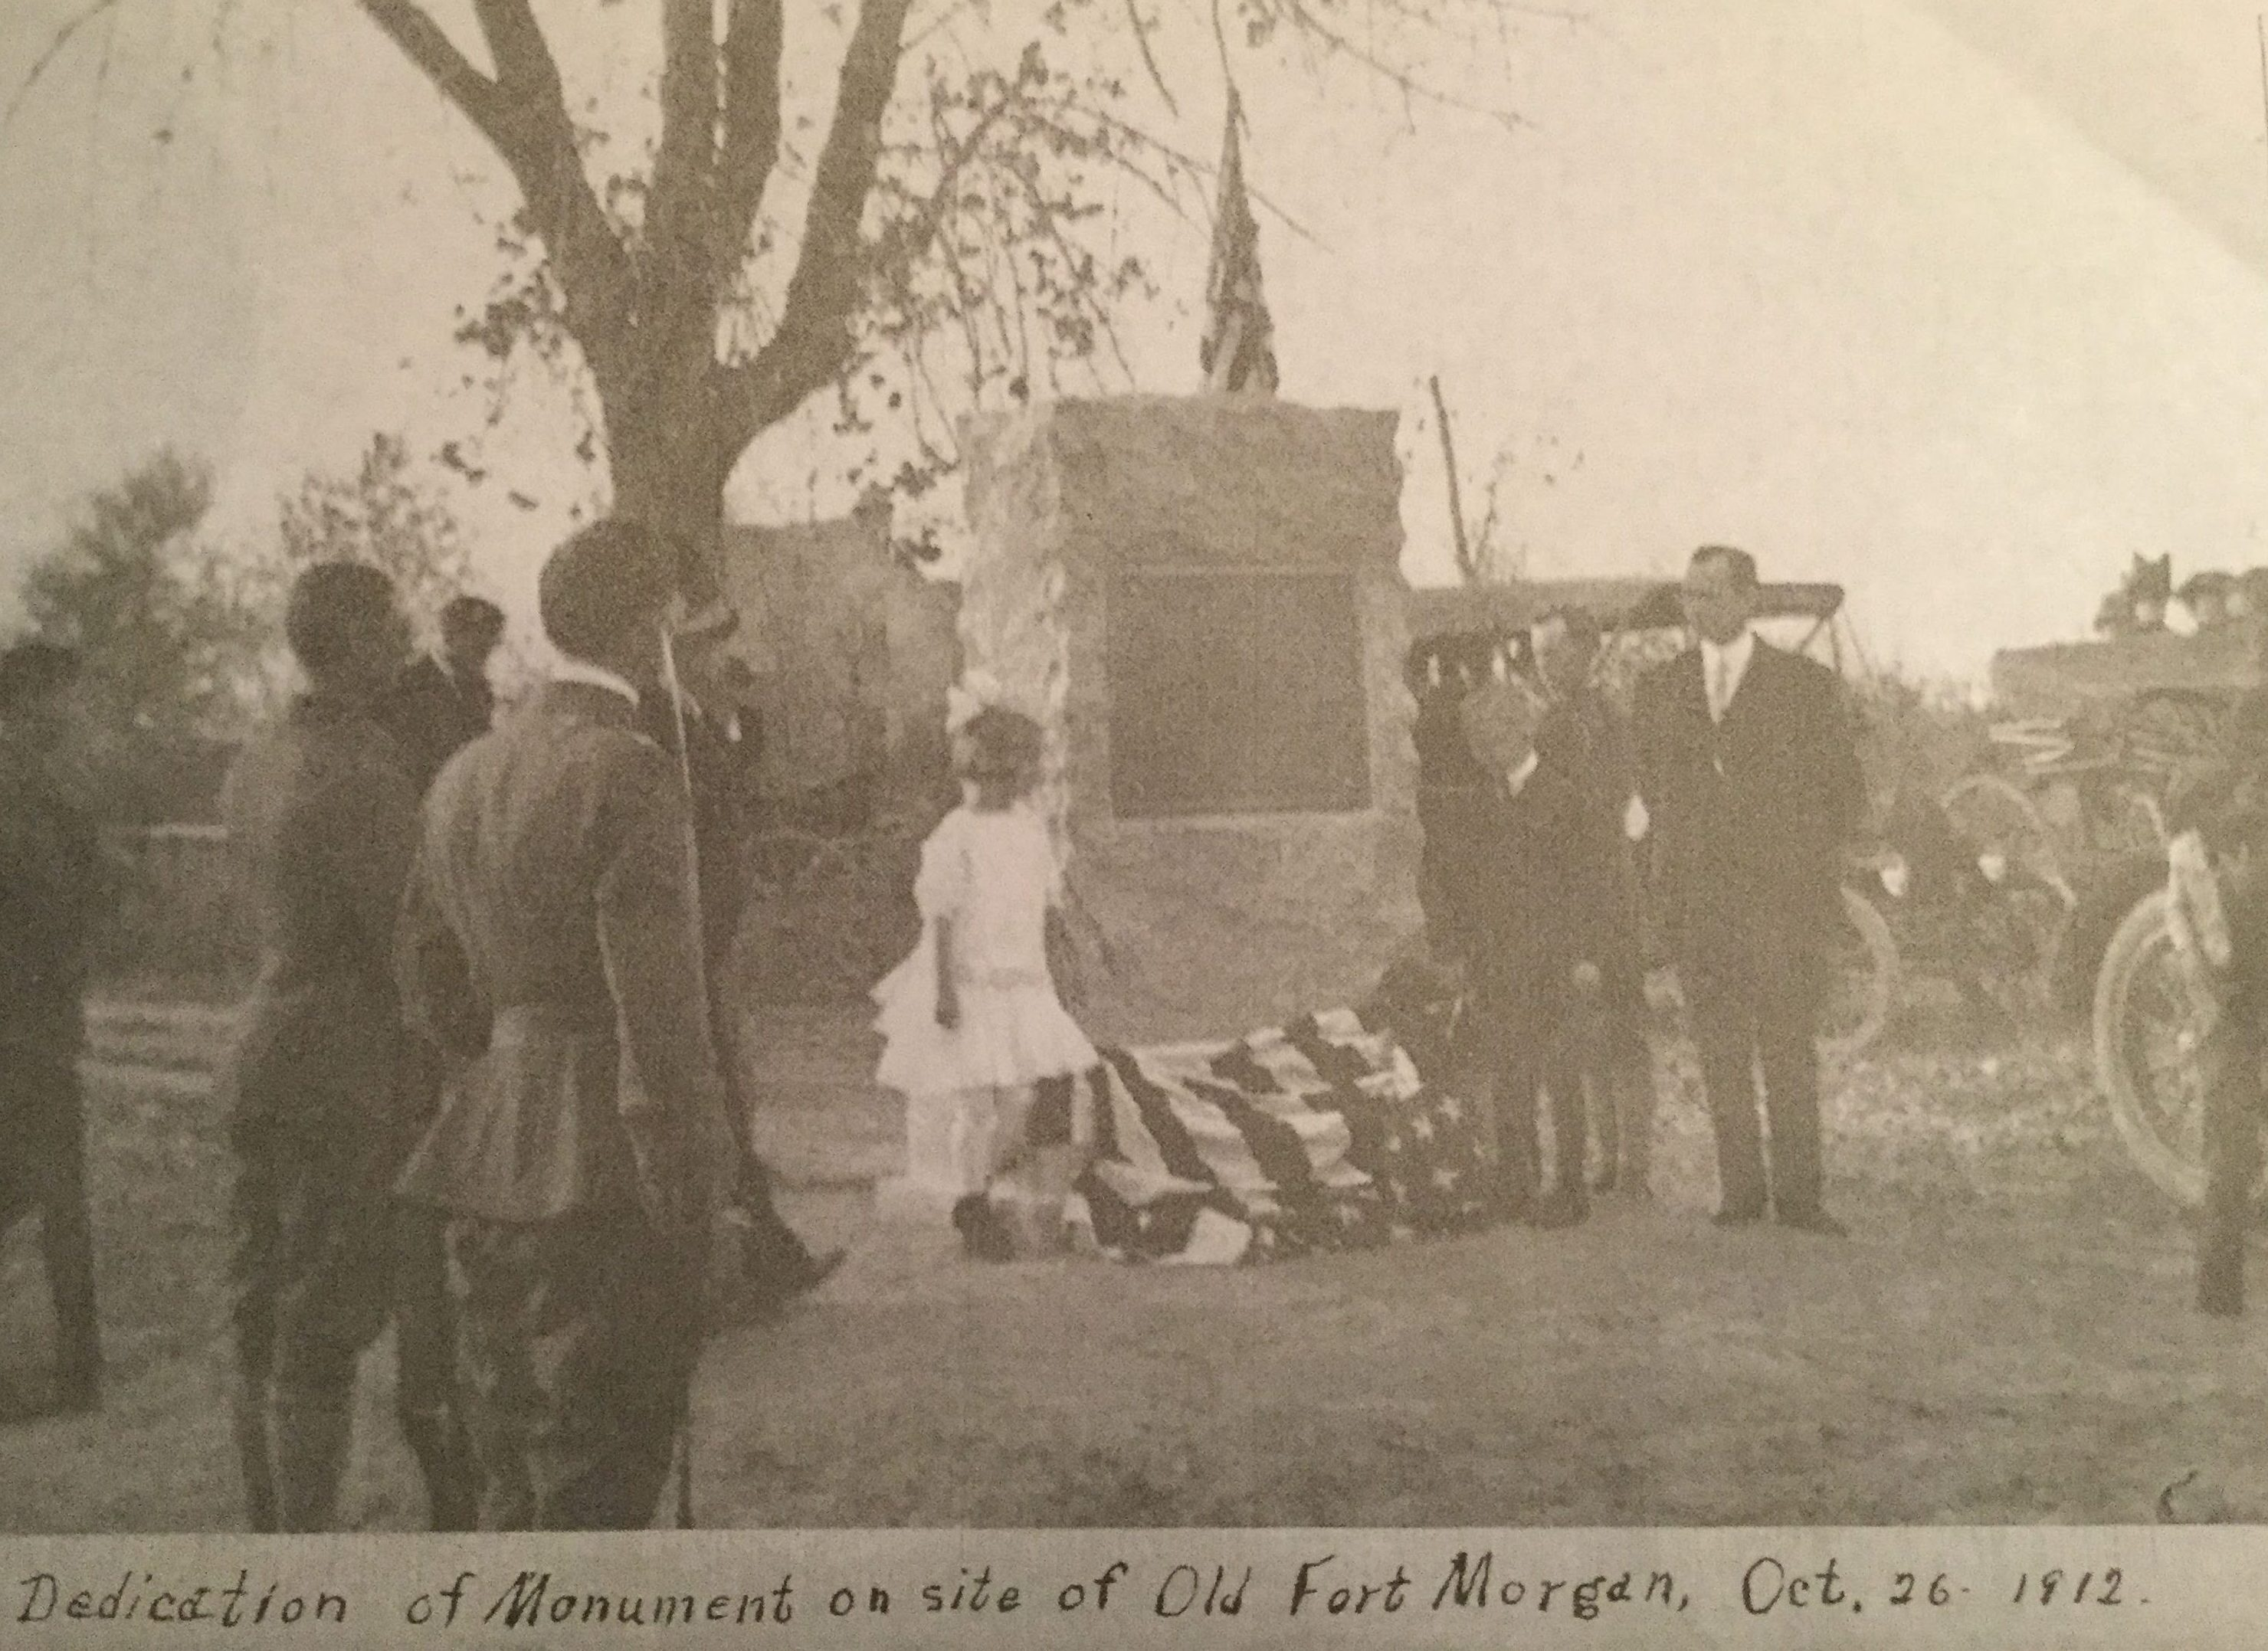 Dedication of Monument on site of Old Fort Morgan, October 26, 1912